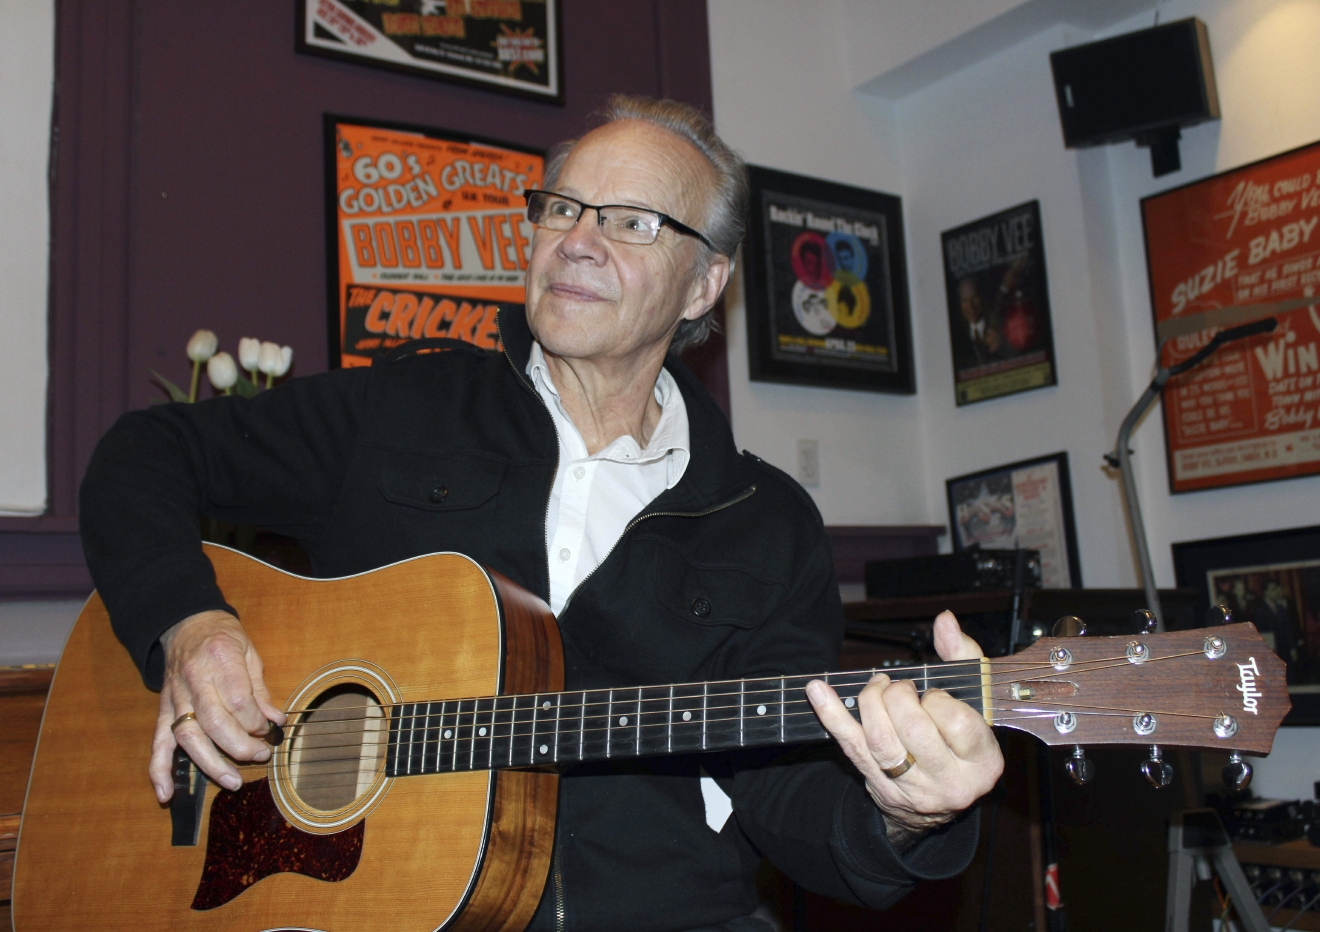 FILE - In this Dec. 18, 2013 file photo, Bobby Vee plays the guitar at his family's Rockhouse Productions in St. Joseph, Minn. Vee, whose rise toward stardom began as a 15-year-old fill-in for Buddy Holly after Holly was killed in a plane crash, died Monday Oct. 24, 2016 of complications from Alzheimer's disease. He was 73. (AP Photo/Jeff Baenen, File)